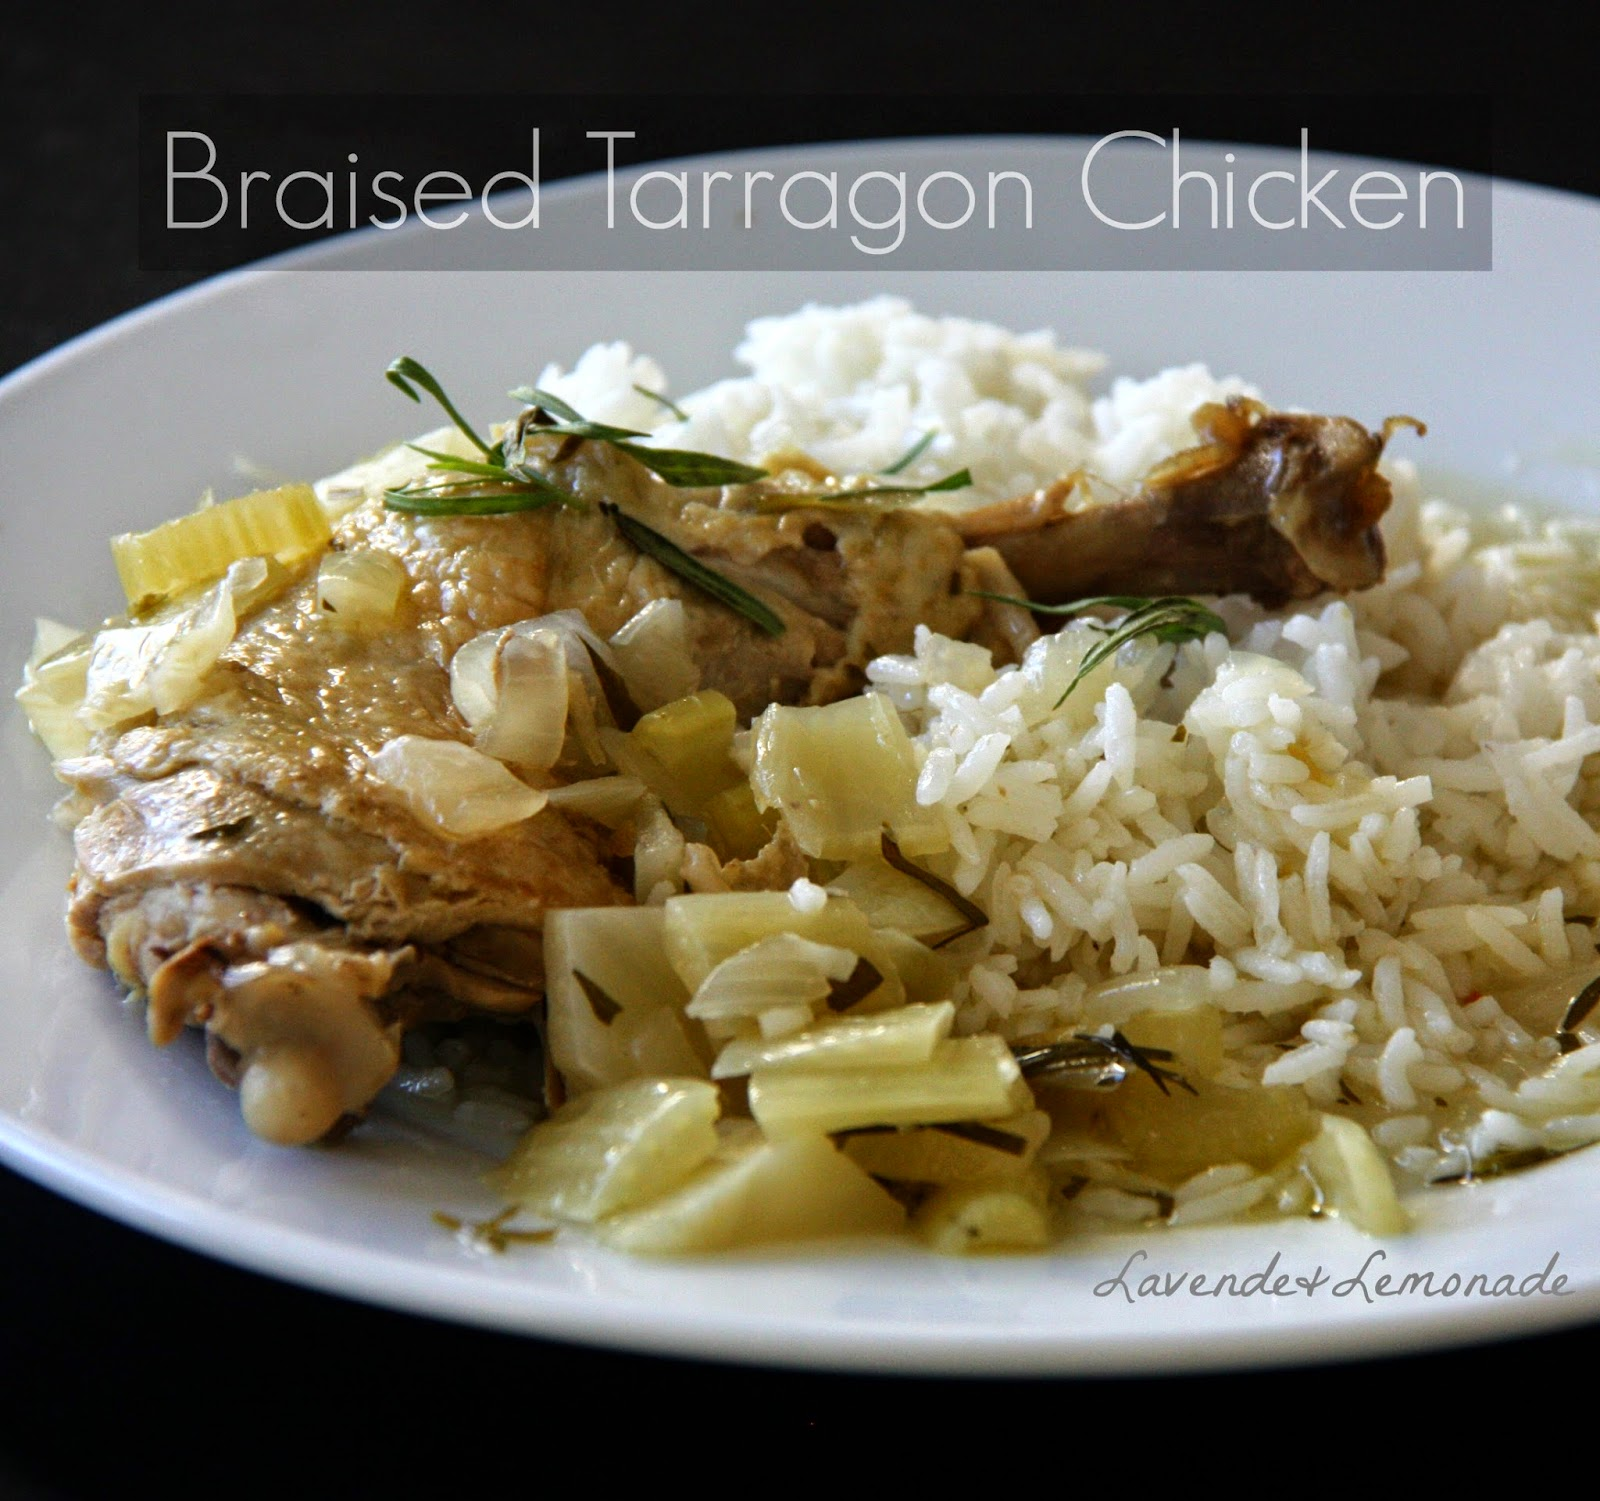 Braised Chicken with Tarragon, from The New American Herbal